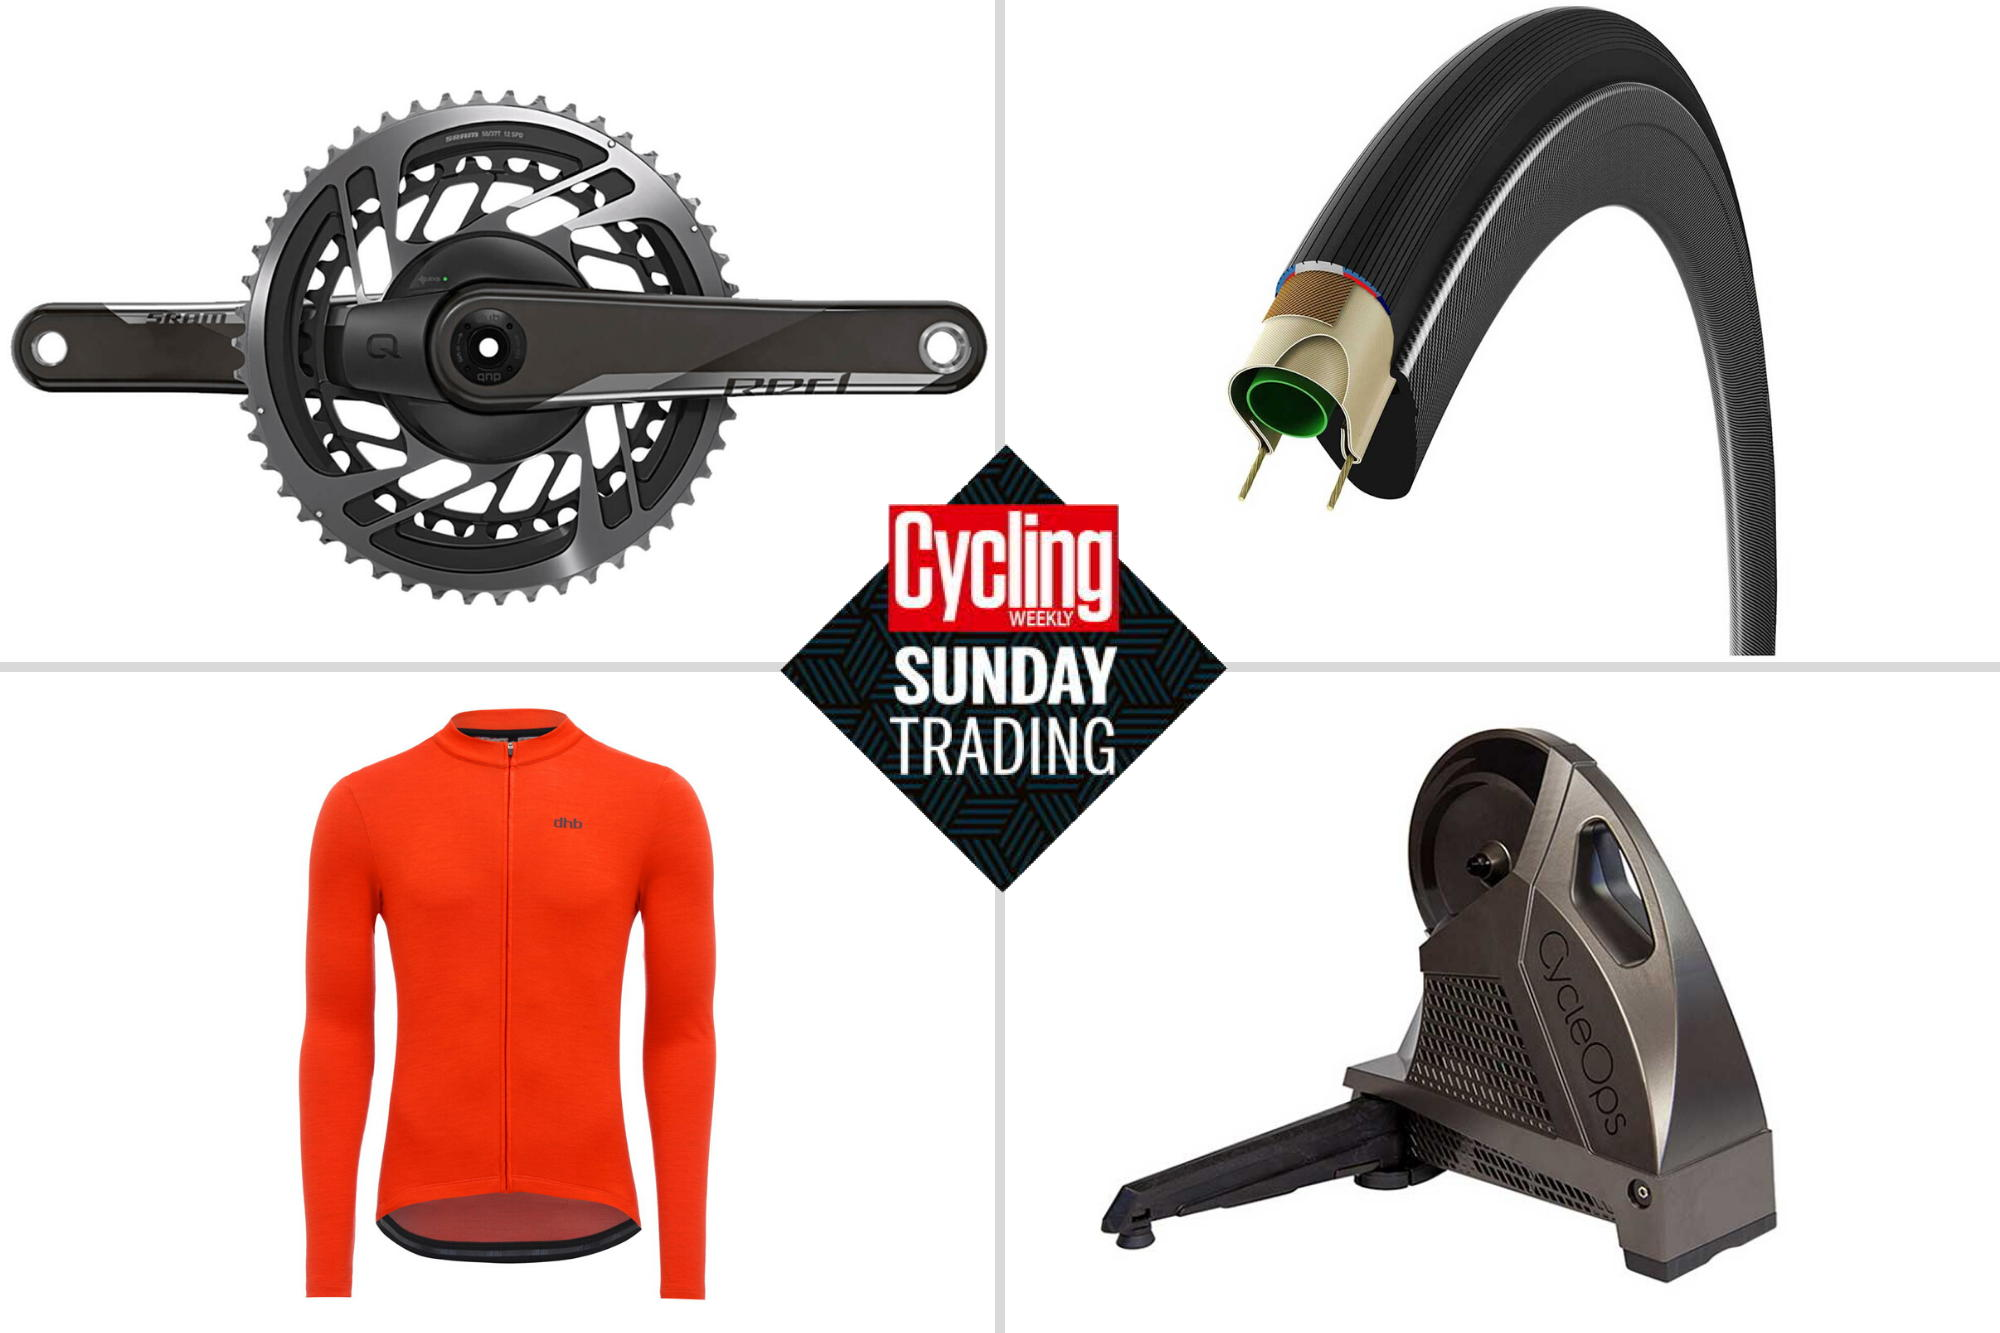 Sunday trading: Save over £350 on a CycleOps smart turbo plus much more